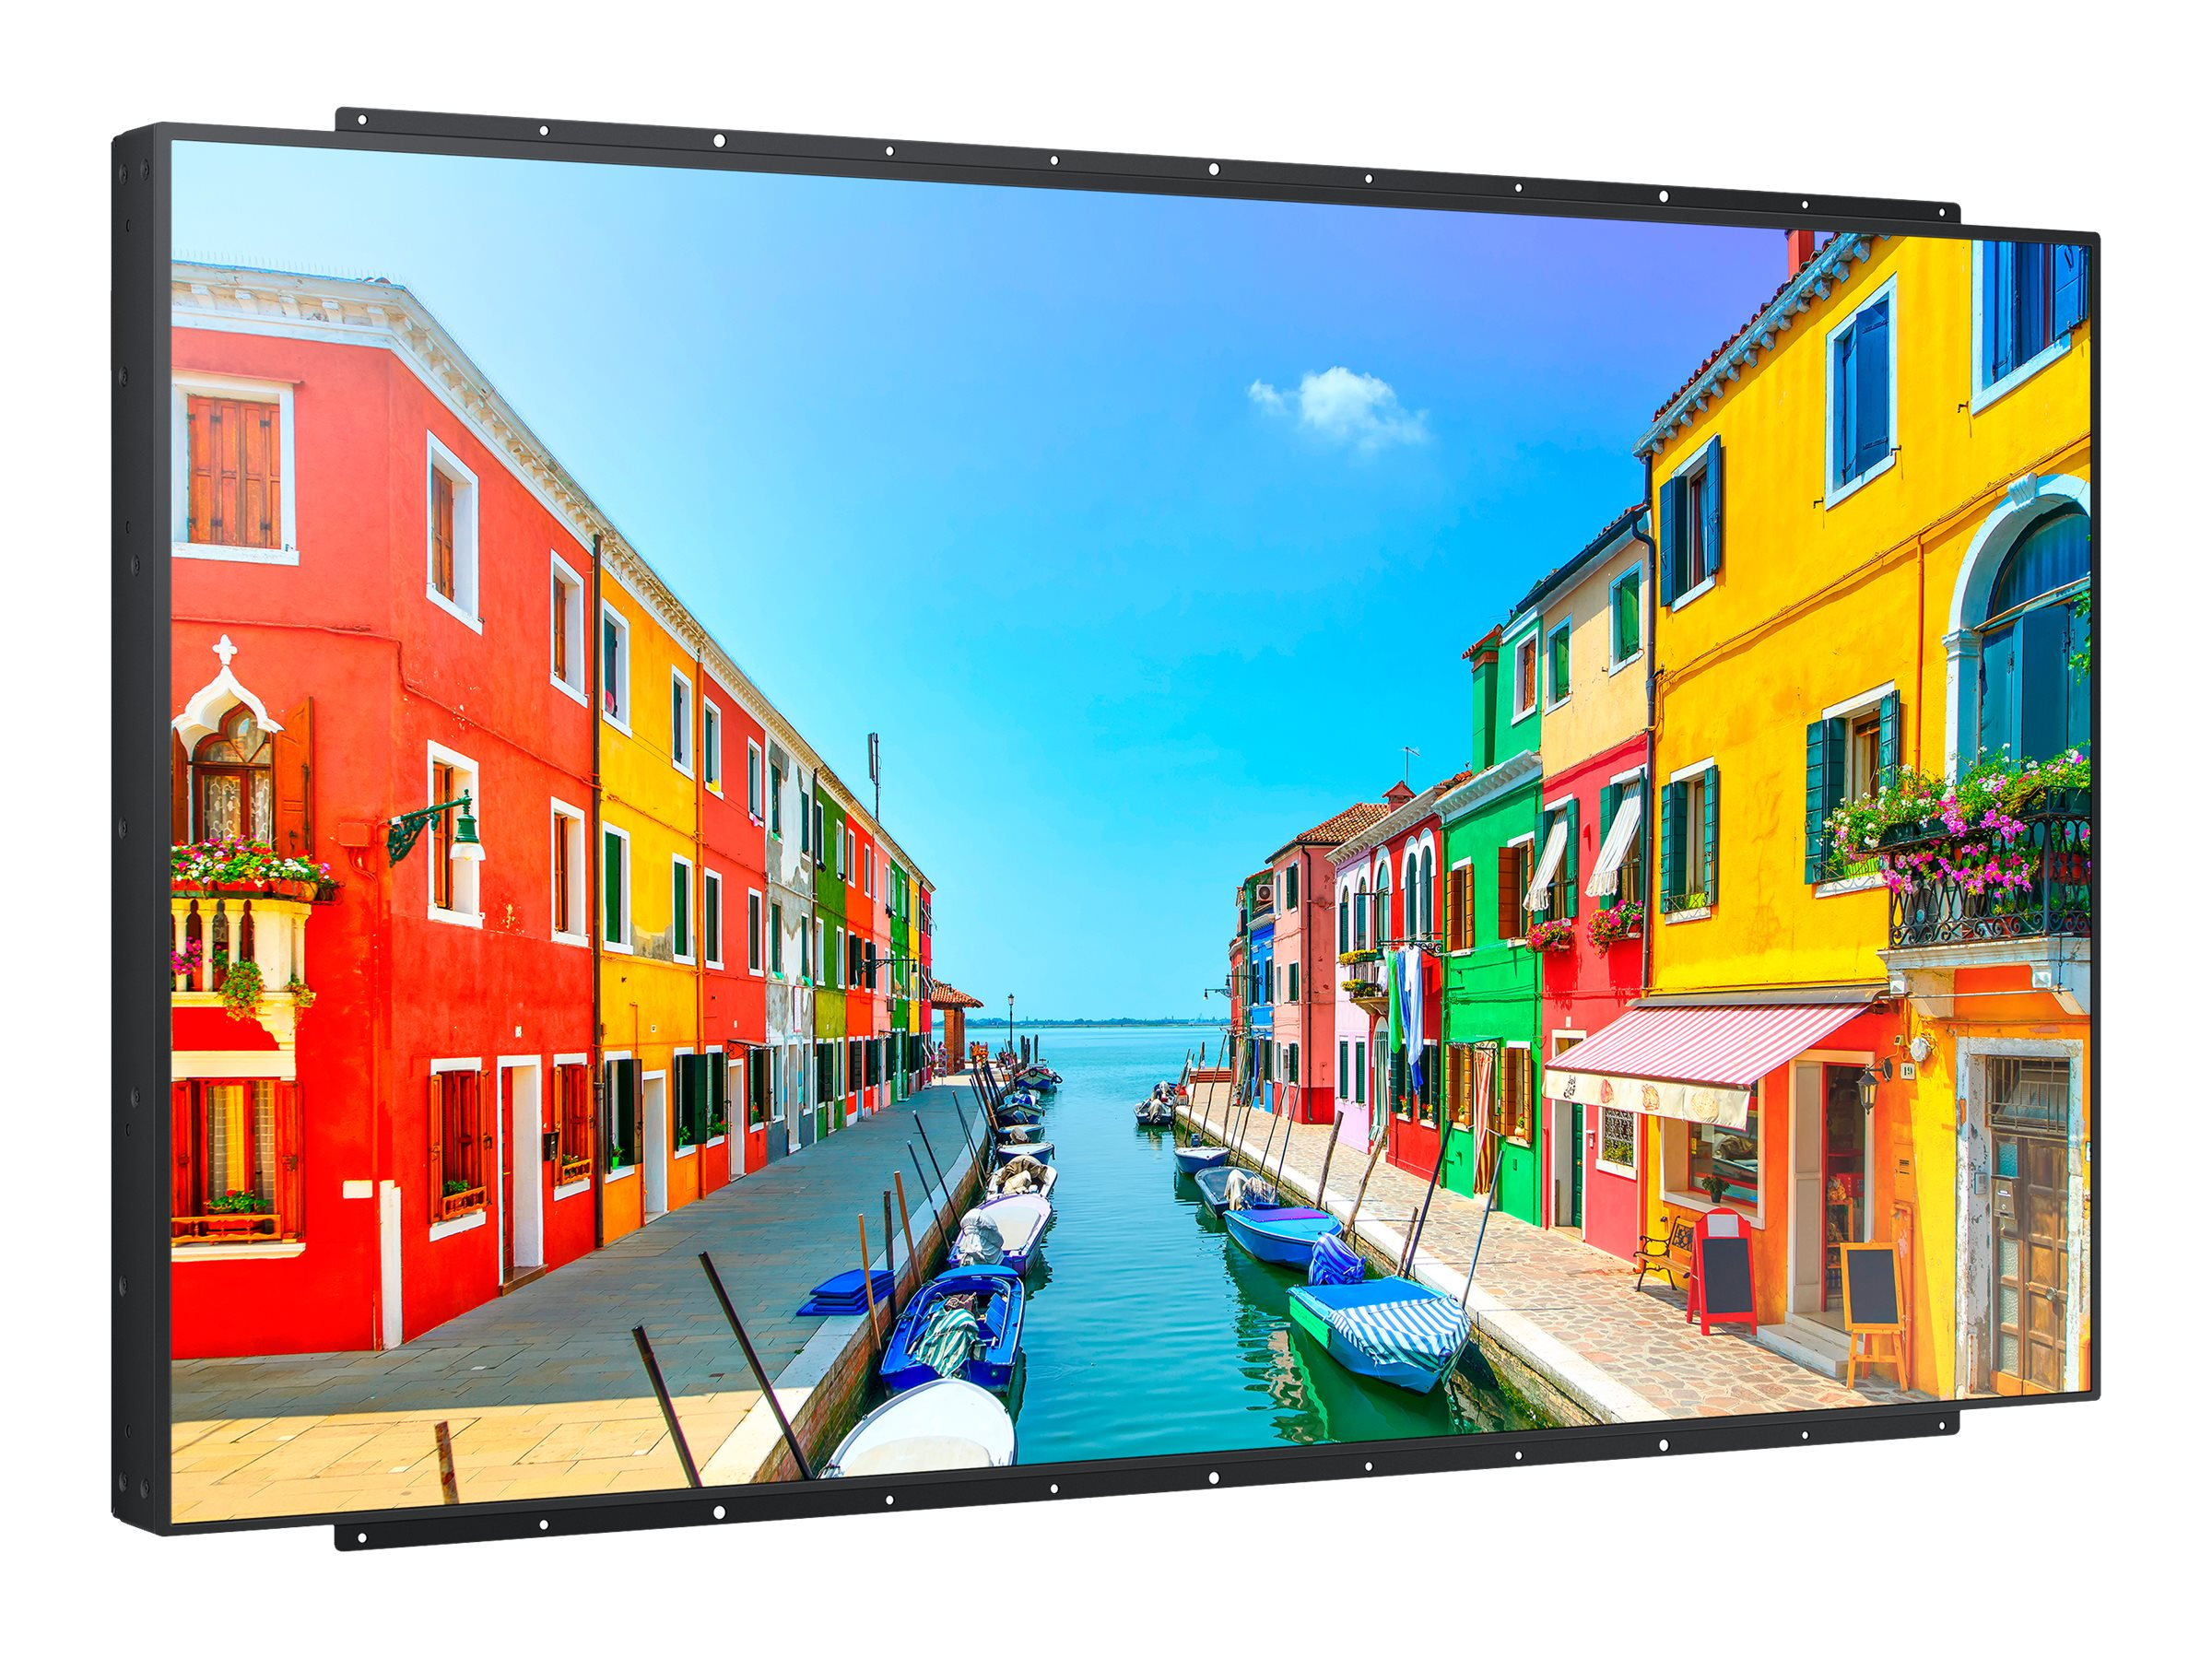 Samsung 55 OMD-K Series Full HD LED-LCD Outdoor Display, Black